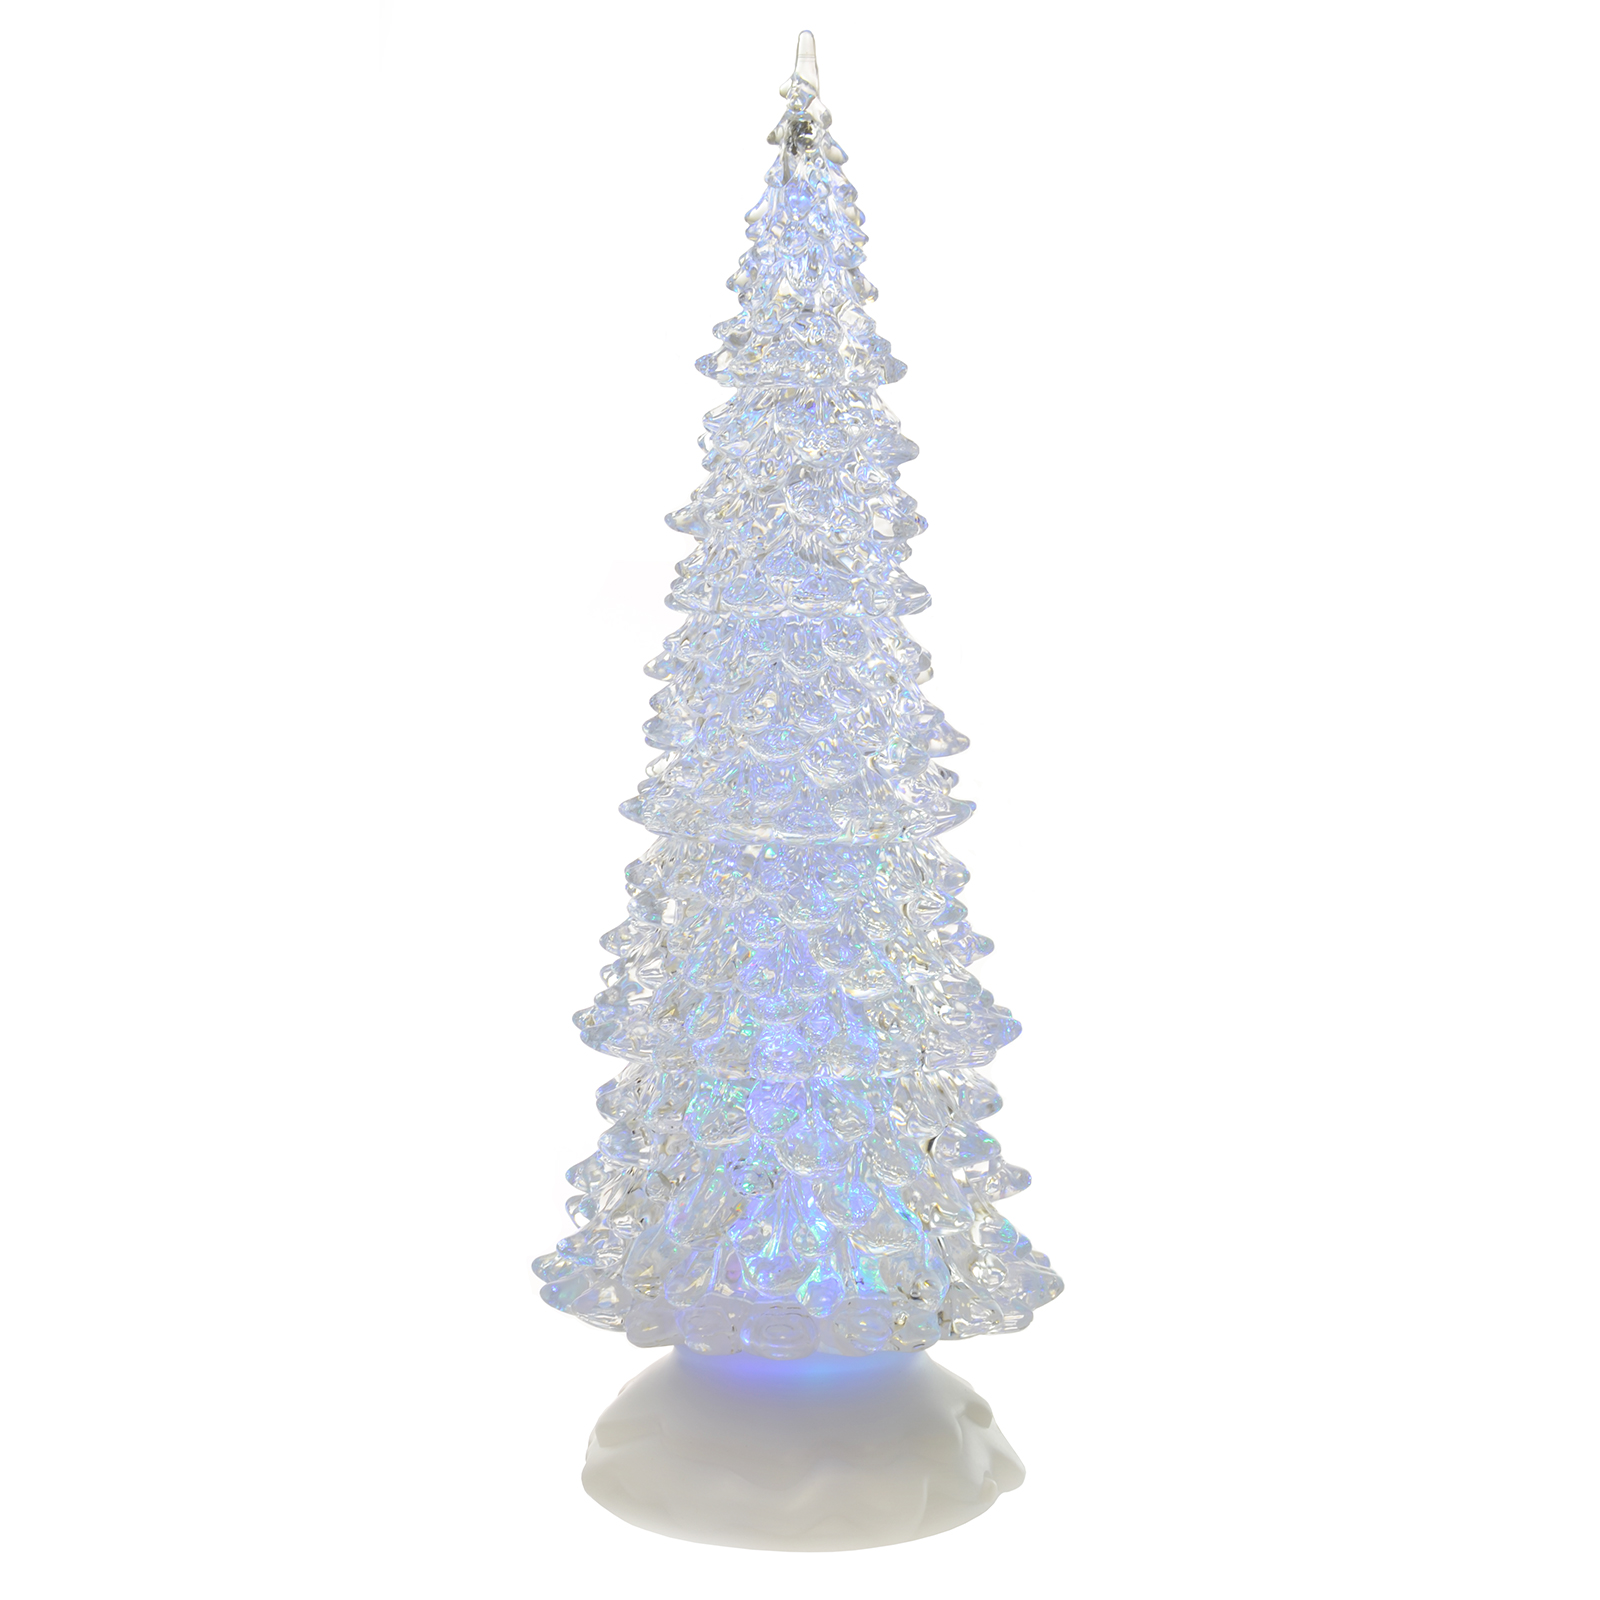 Swirling glitter water christmas ornament xmas decoration